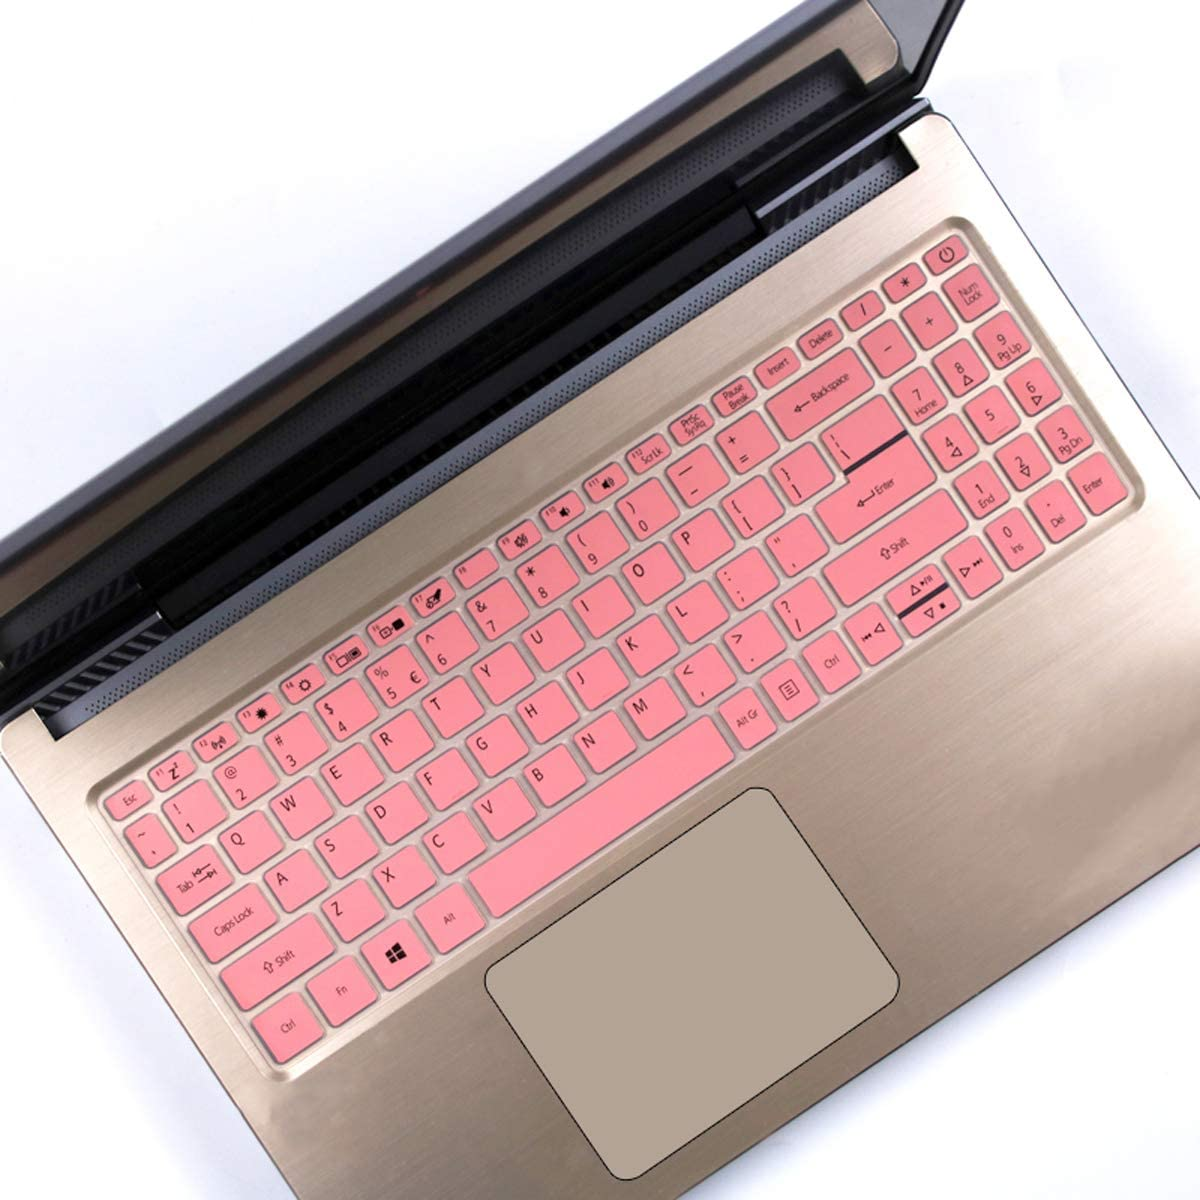 Keyboard Cover Fit 15.6 inch Acer Aspire 5 Slim Laptop   A515-43 A515-54 A515-54G   Acer Swift 3 SF315, Acer Aspire 5 Skin -Pink